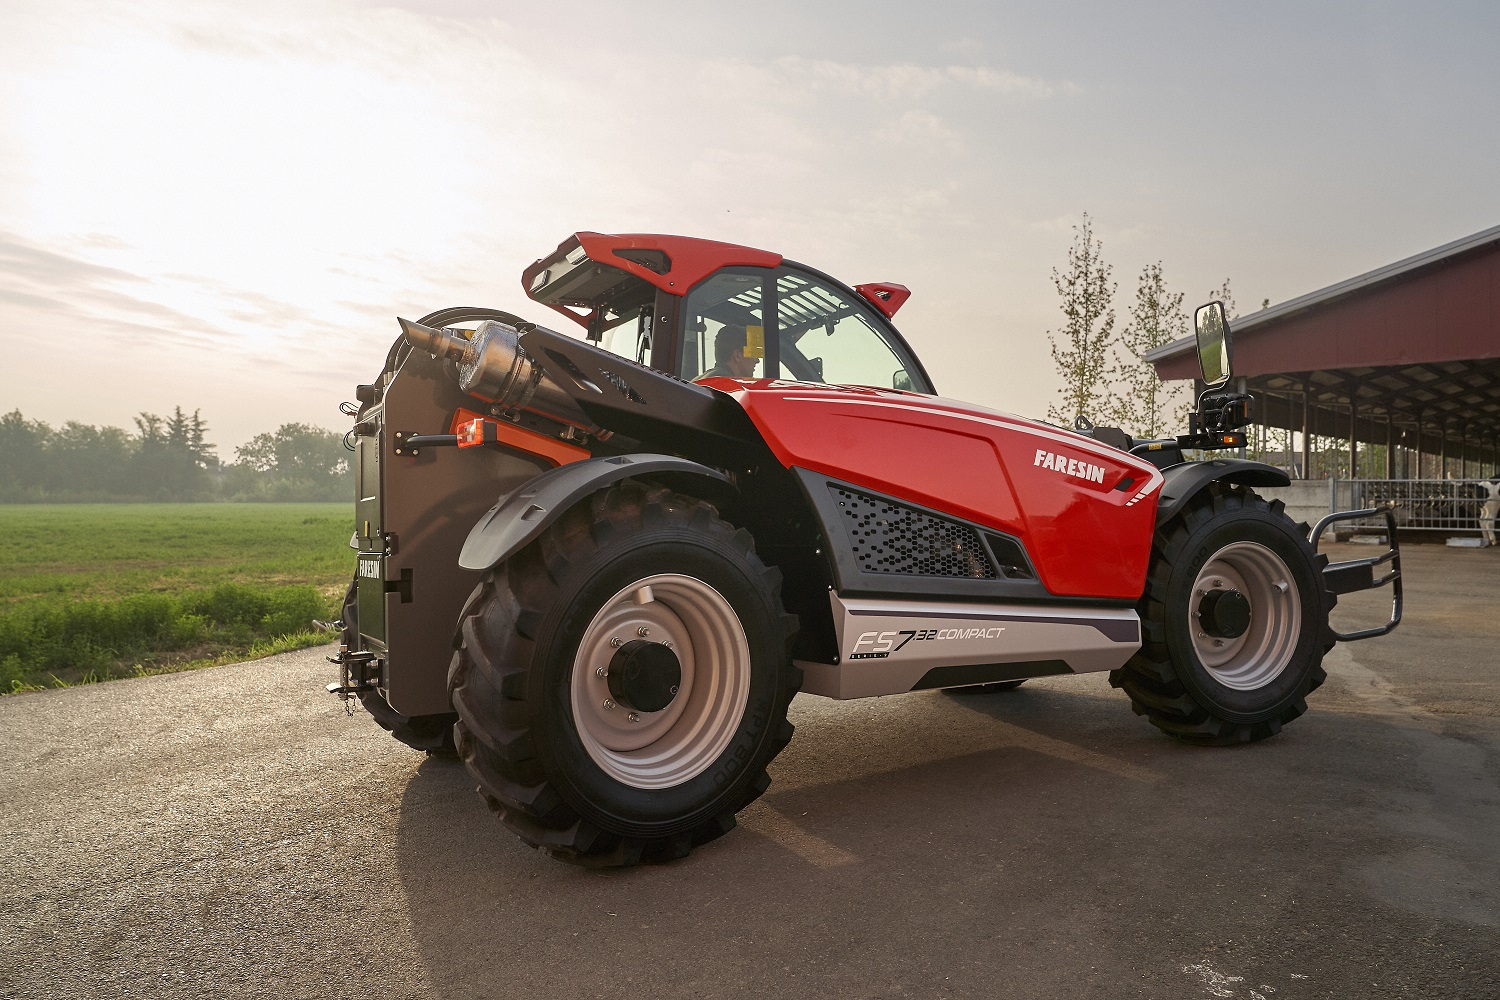 FS 7.32 Compact, the first model of the Next Generation of Faresin telehandlers